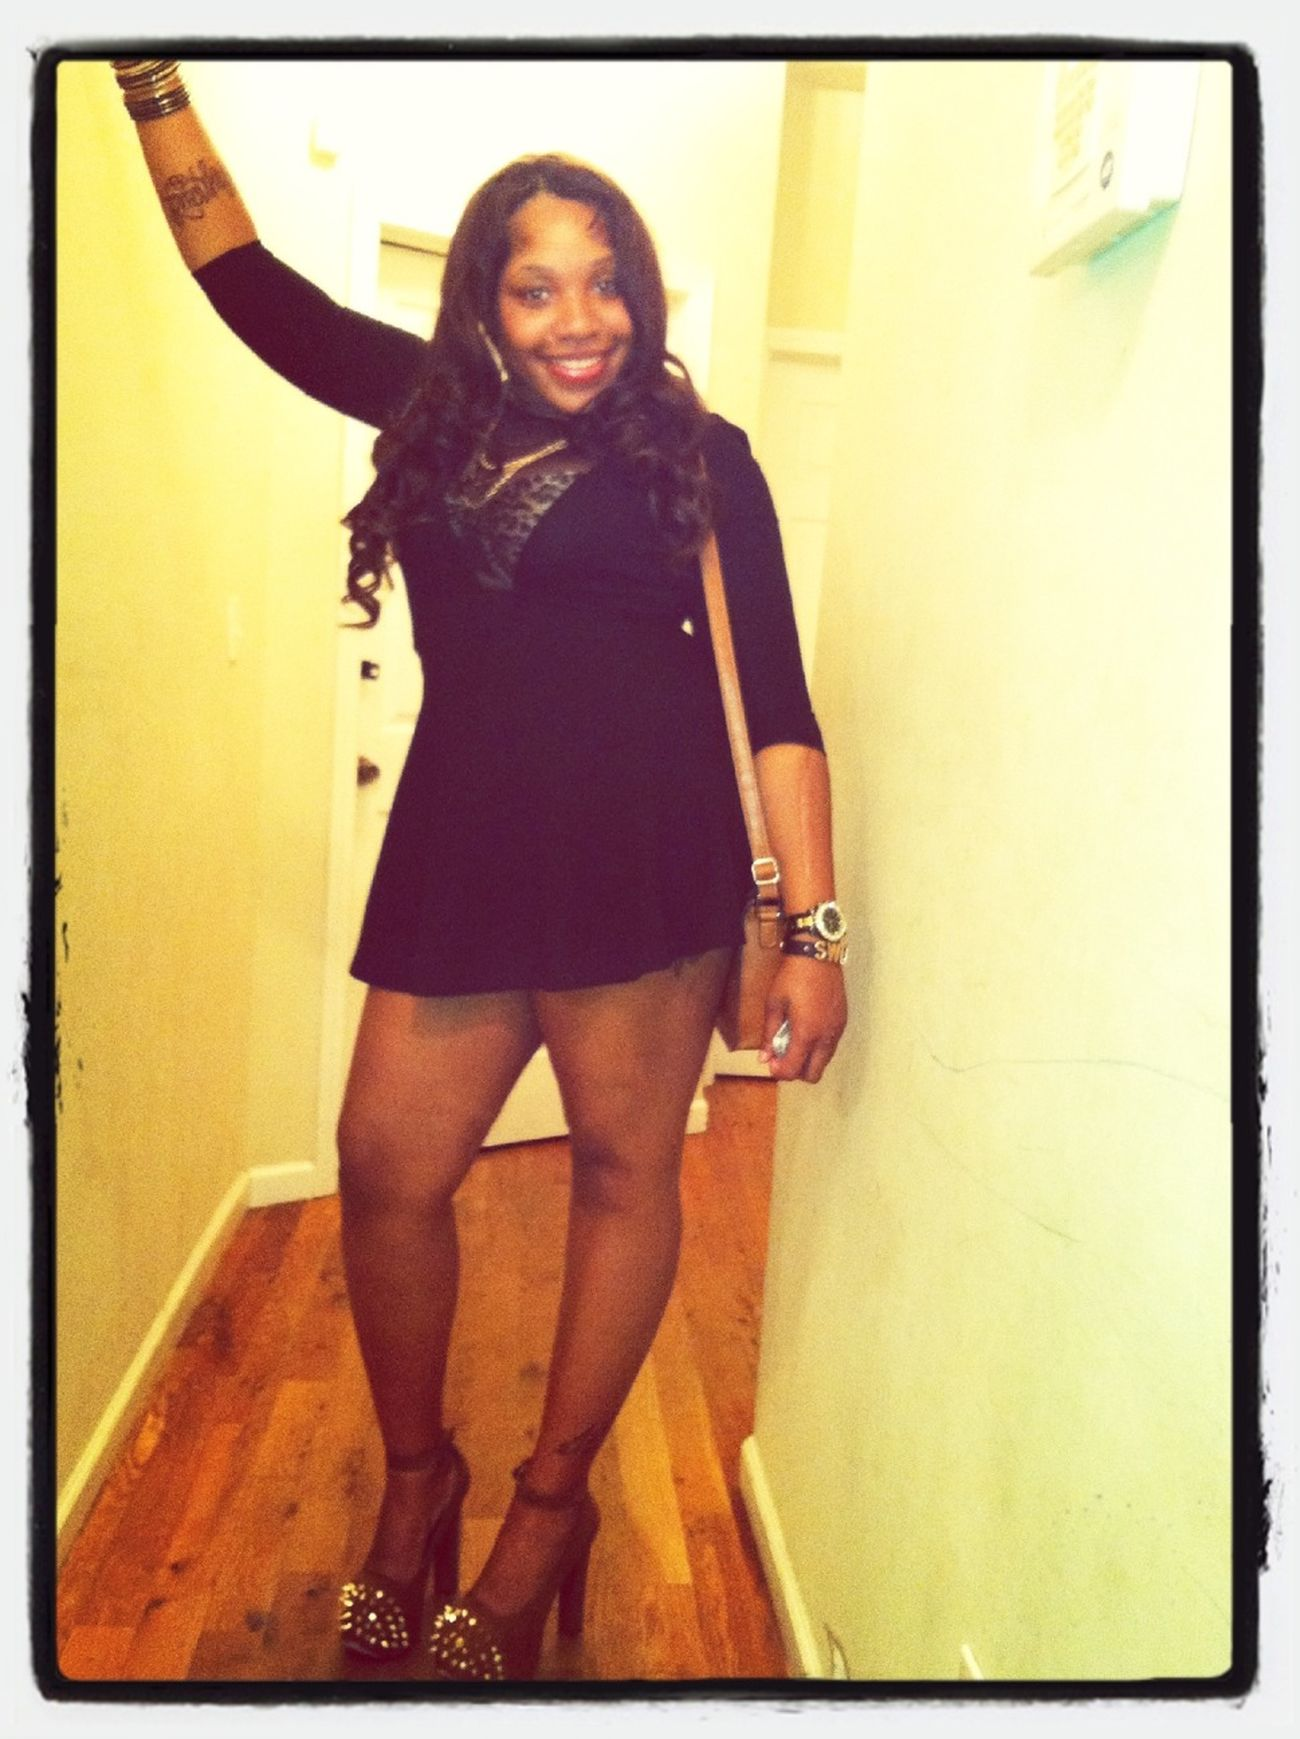 My Night At #encore